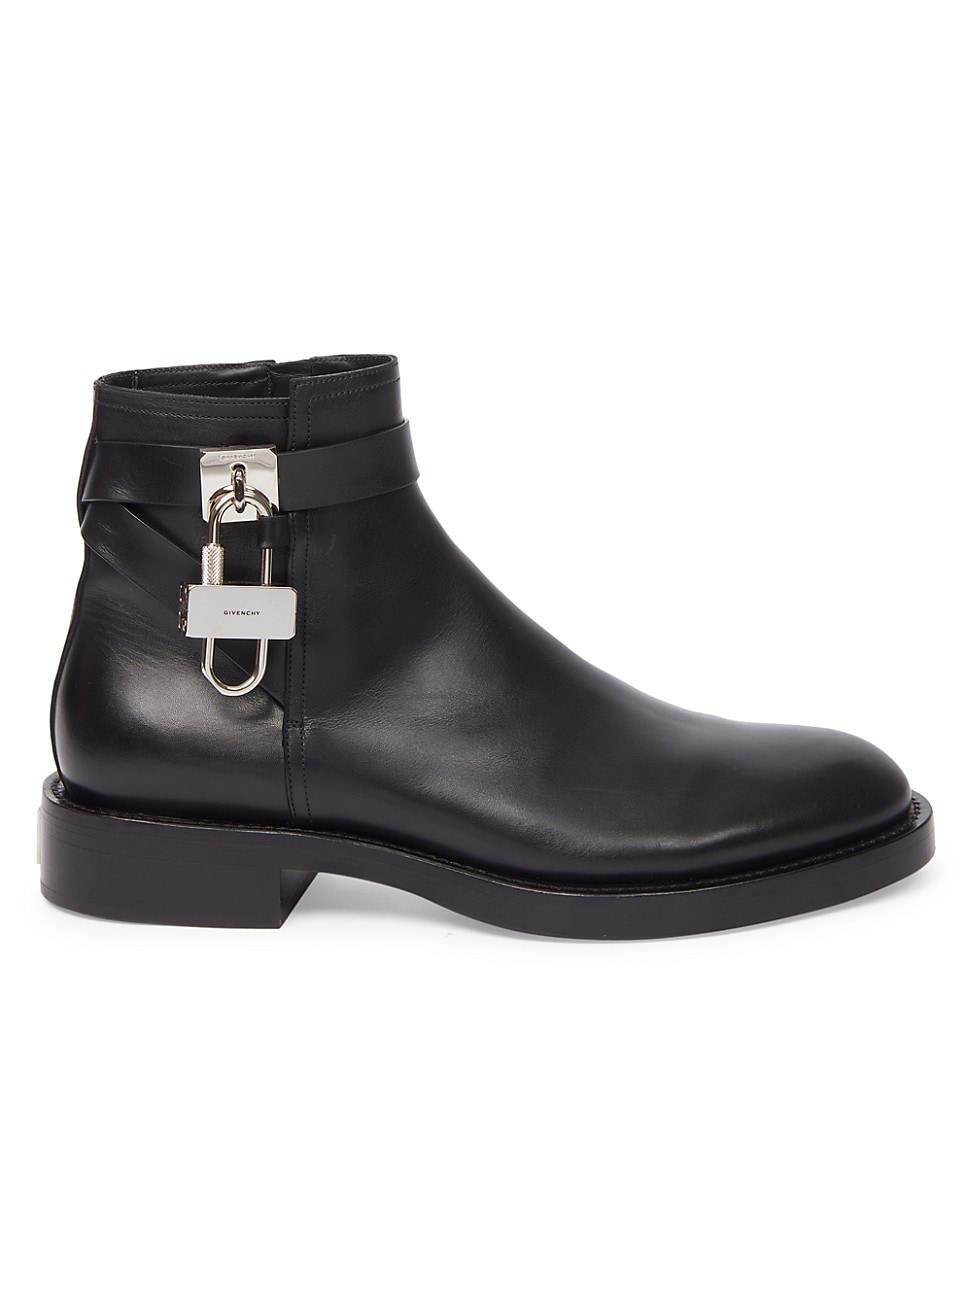 Givenchy Boots MEN'S THE LOCK LEATHER ANKLE BOOTS